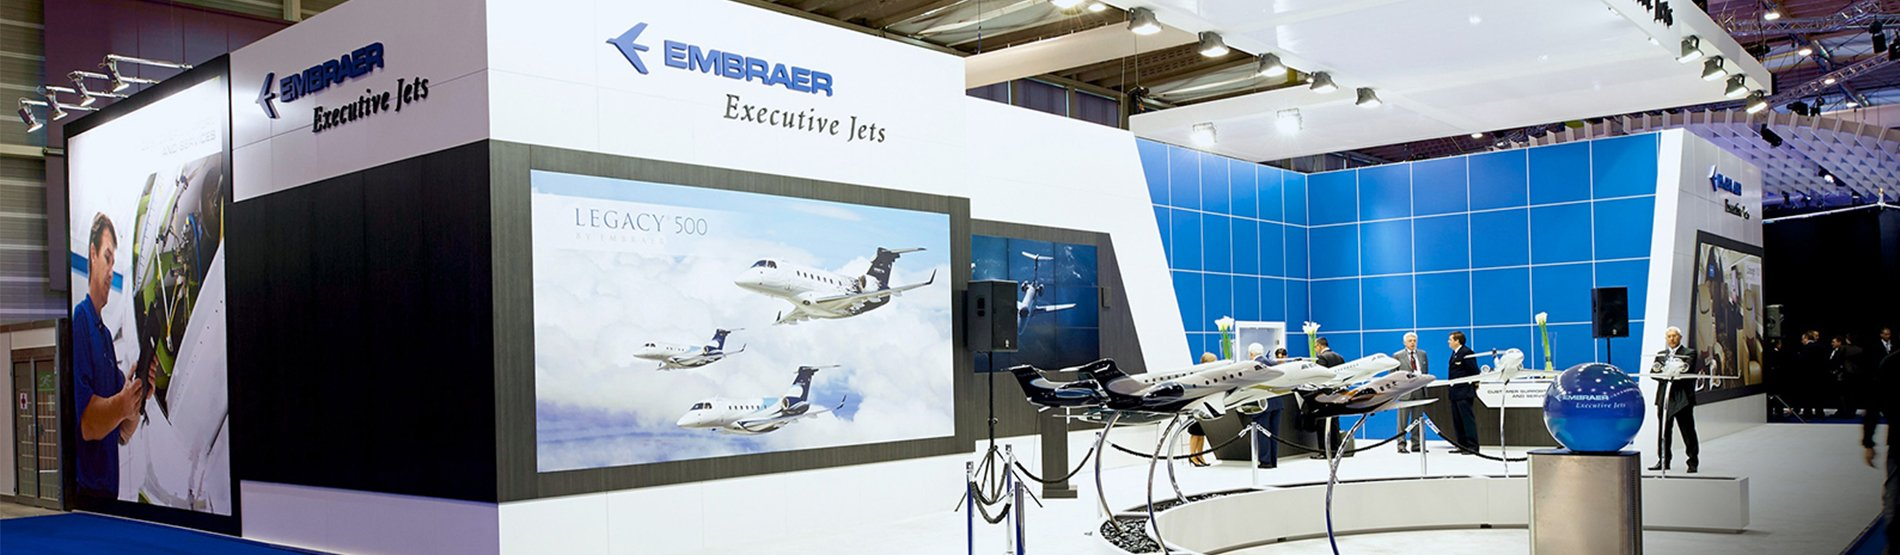 embraer trade show exhibit